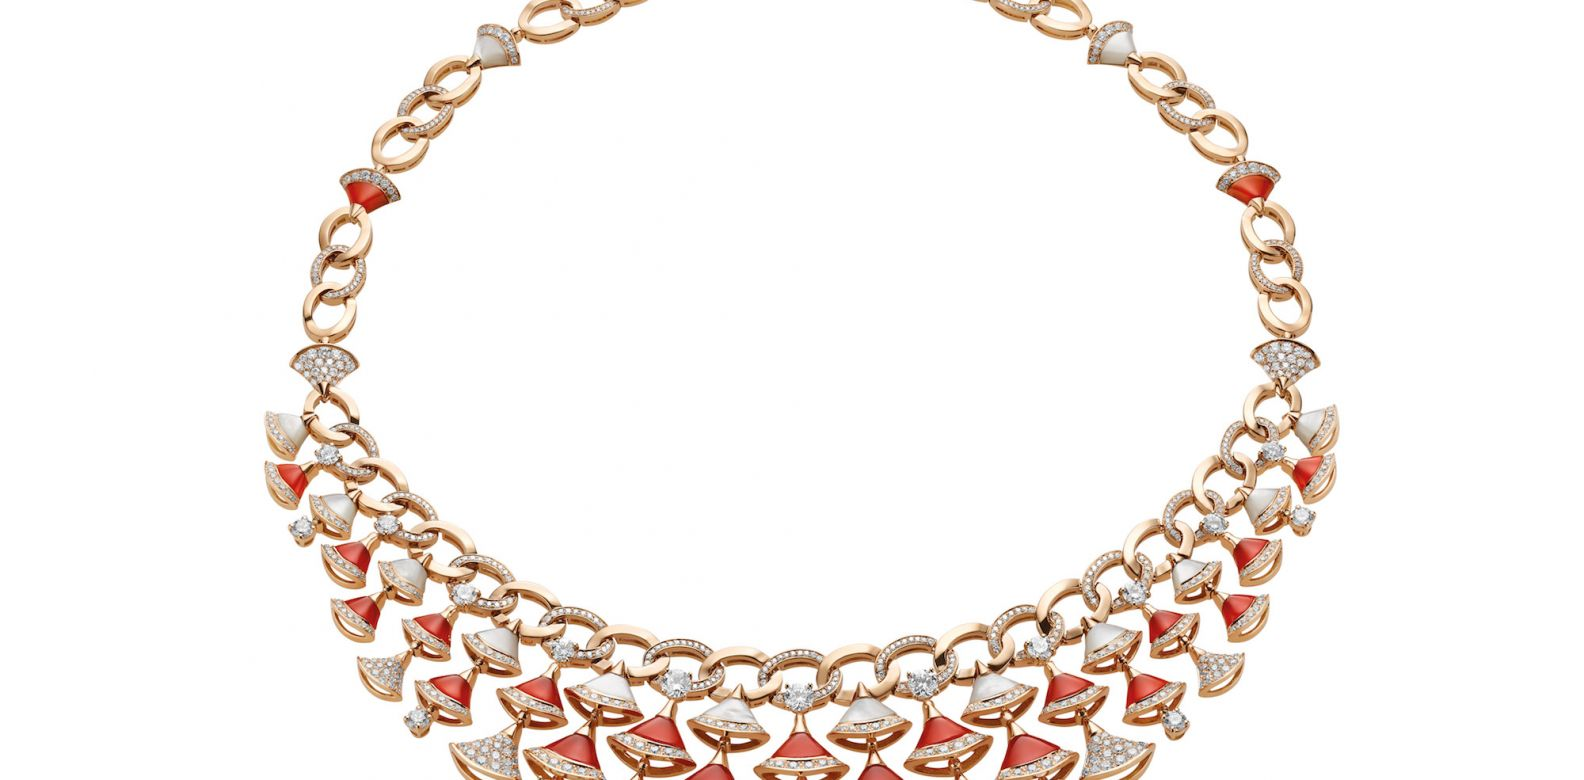 Necklace in pink gold with carnelian, mother-of-pearl and diamonds (8.87cts)